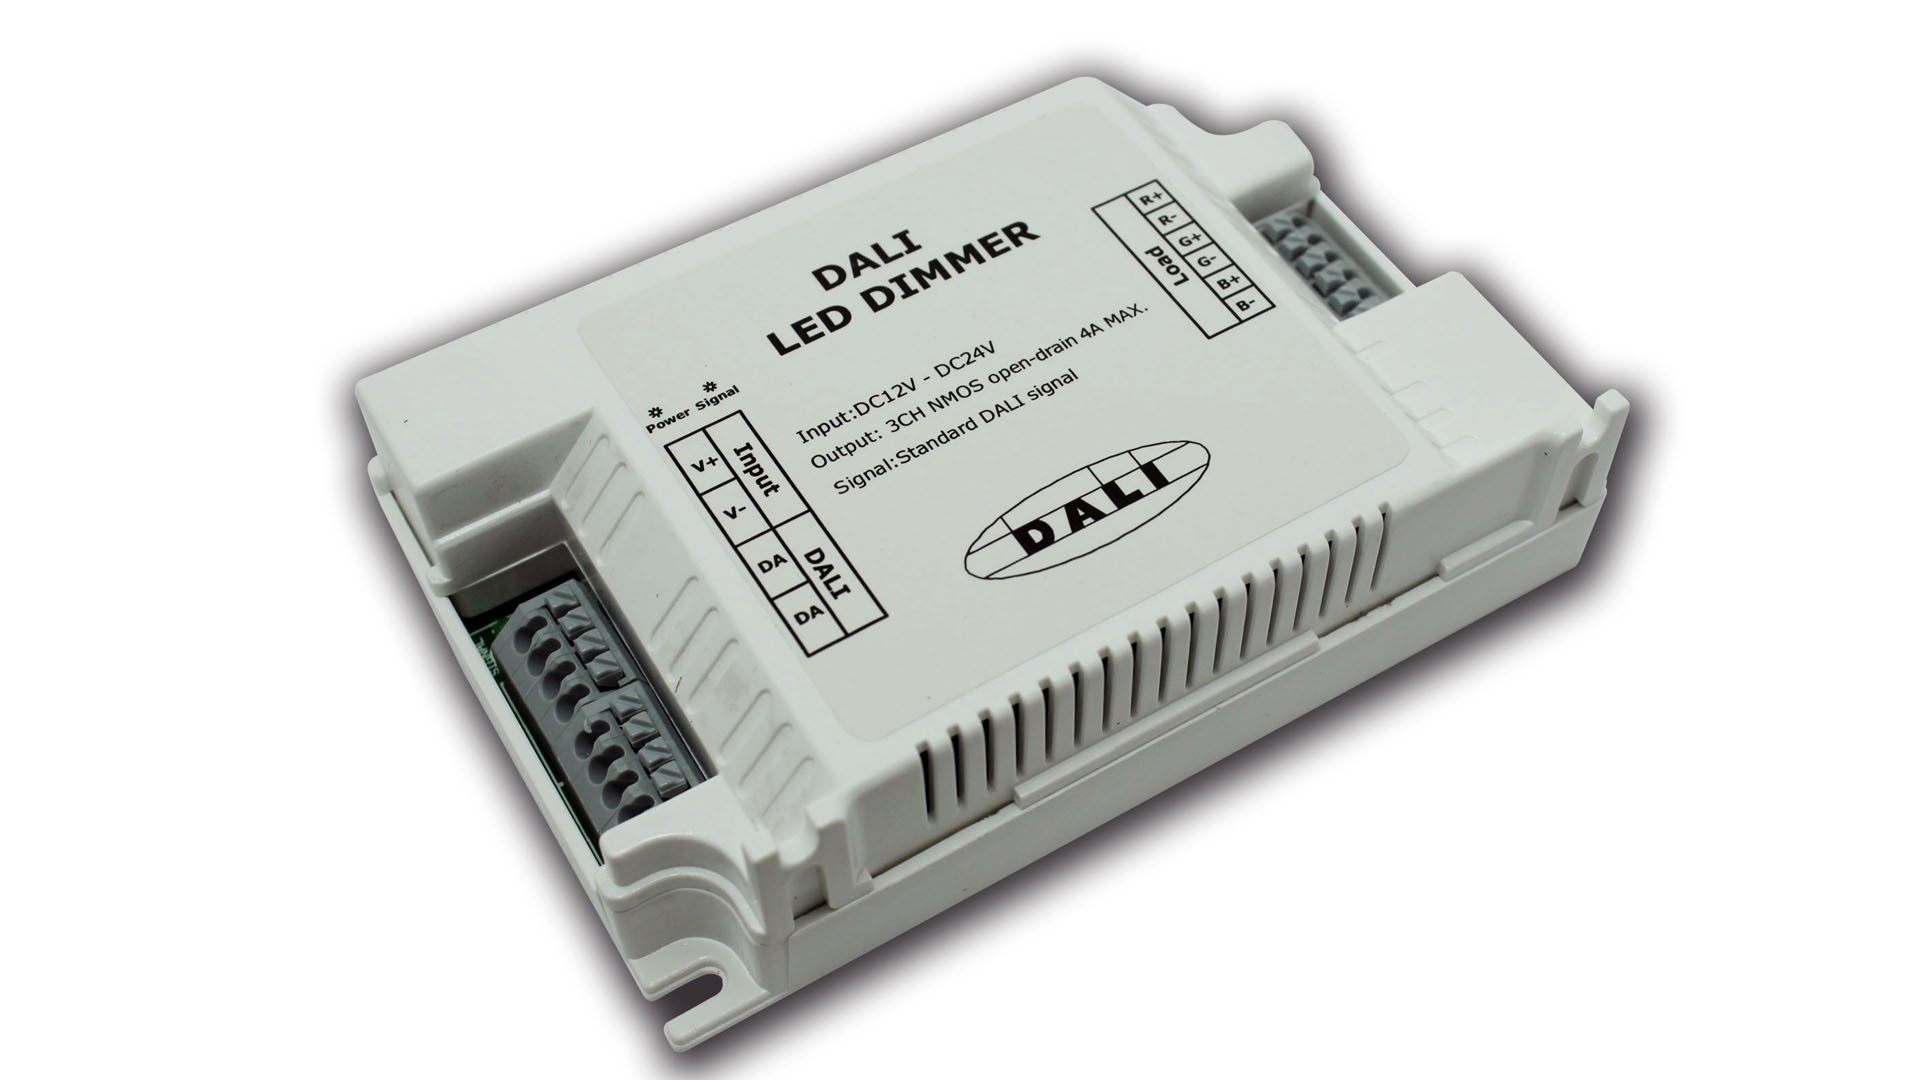 Rgb Dimmer Rgb Led Lighting Control Dali Dimmer 3 Channels Output